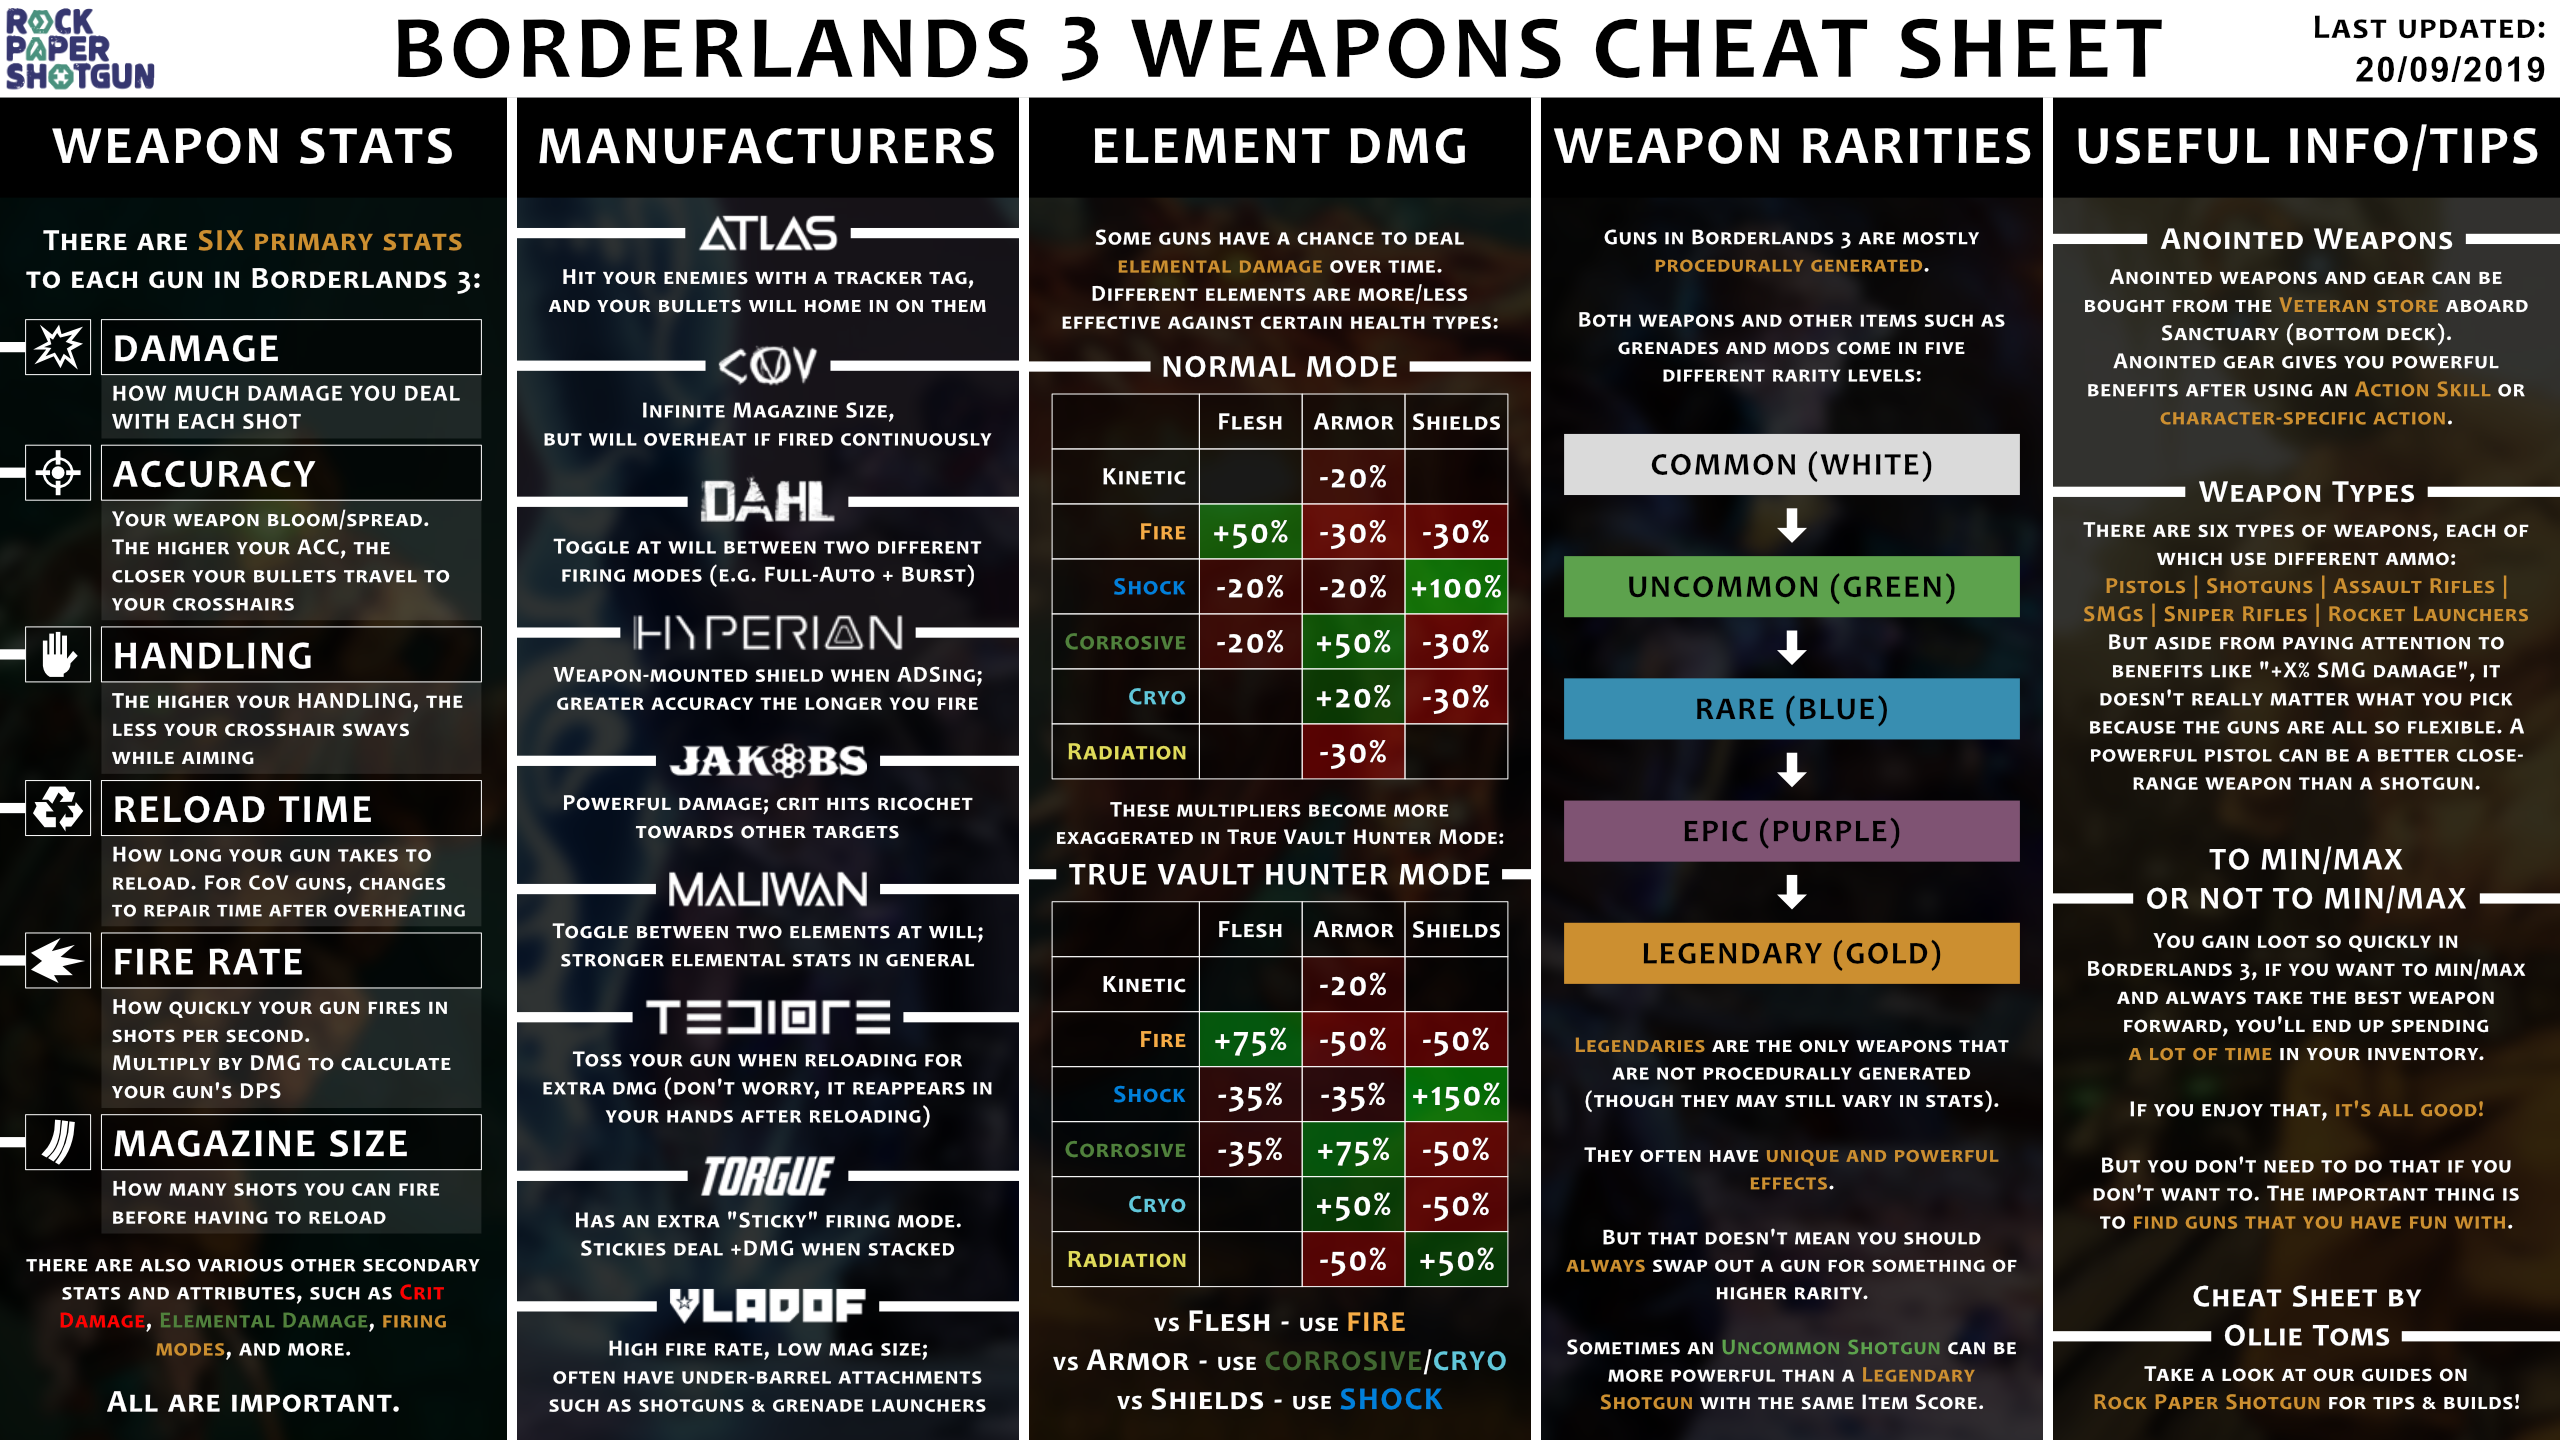 Borderlands 3 weapons cheat sheet 2560x1440